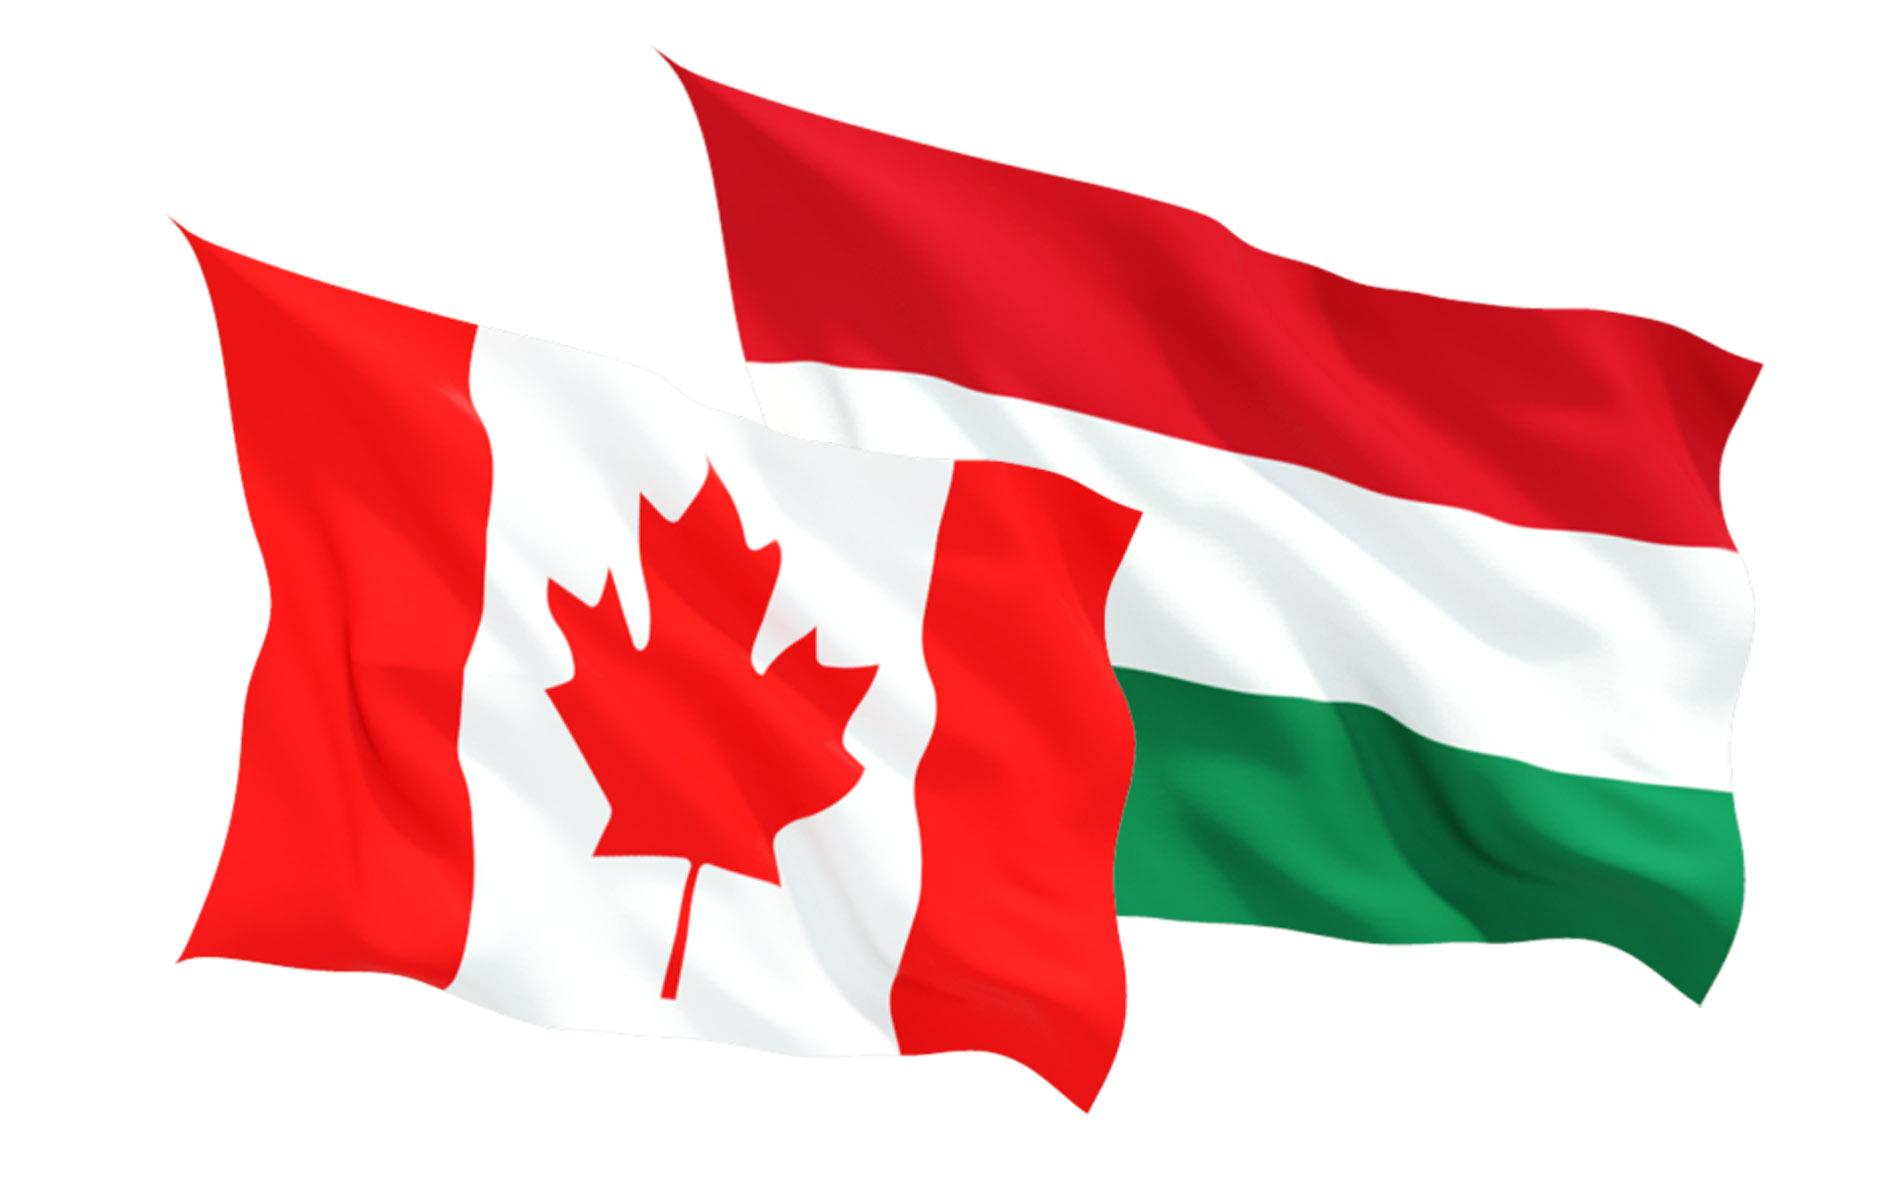 Hungary Summons Canadian Ambassador Over Remarks On Higher Education Law